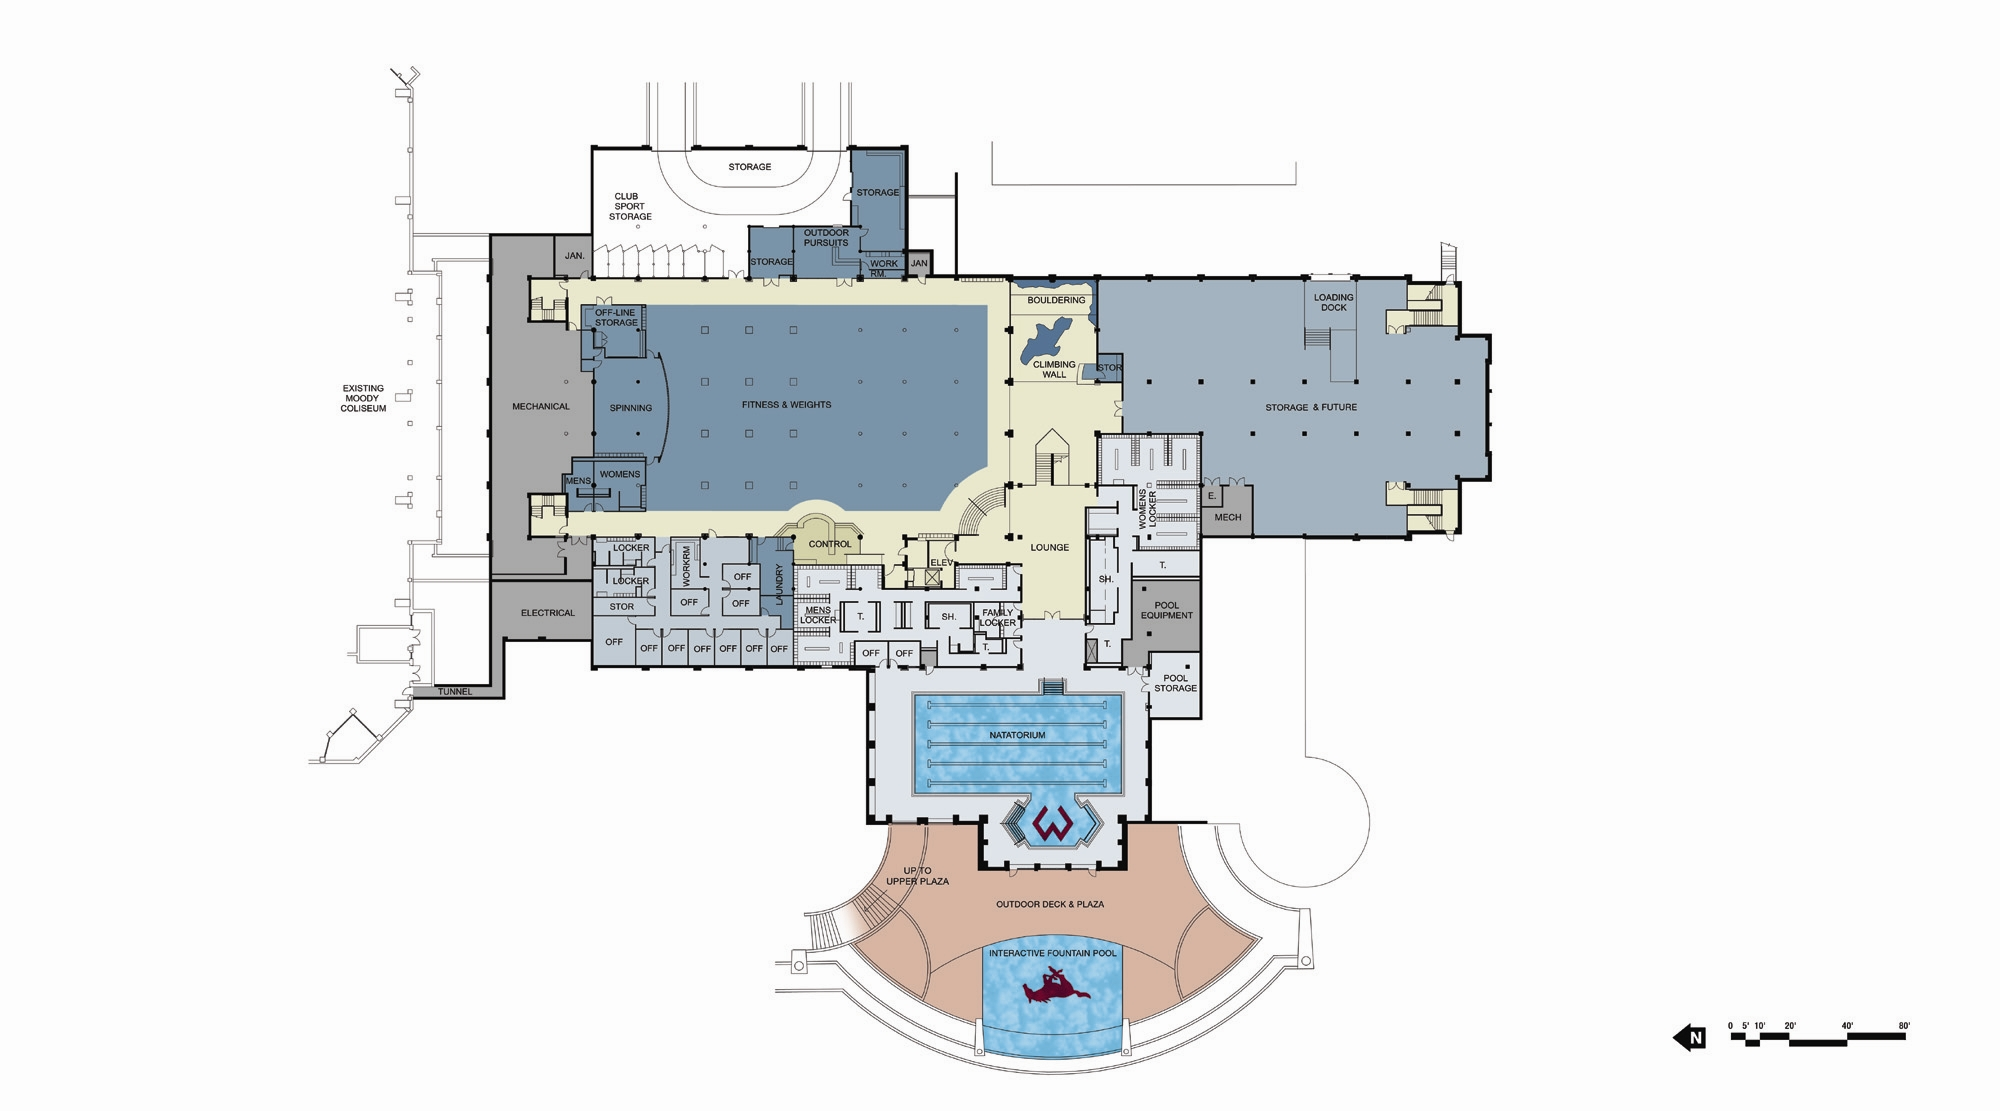 Best Kitchen Gallery: Facilities Overview Smu of Sport Gym Floor Plan on rachelxblog.com